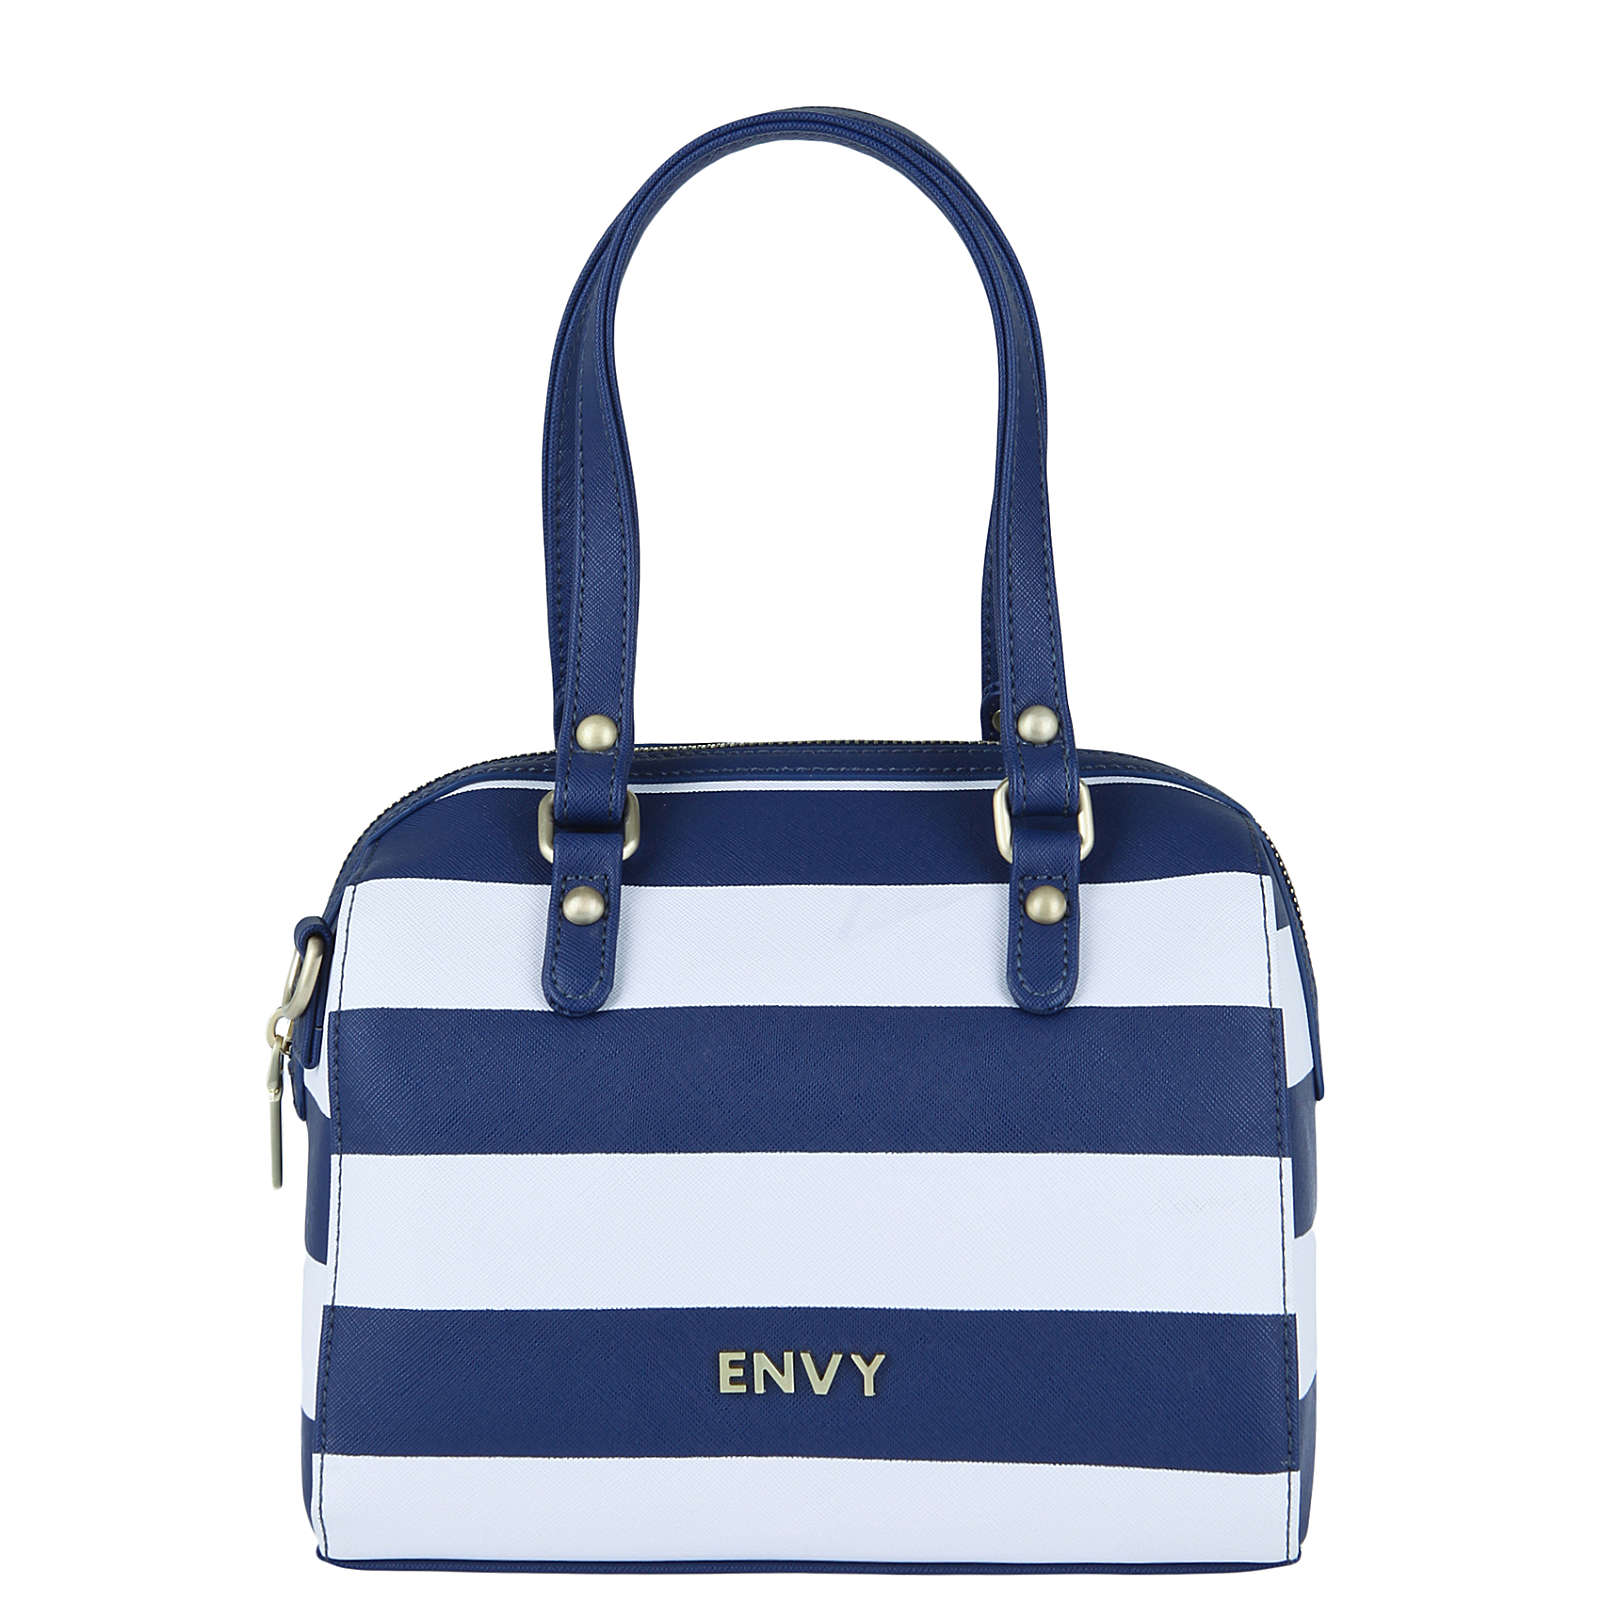 House of Envy Handtasche POWER BOWLING blau/wei...